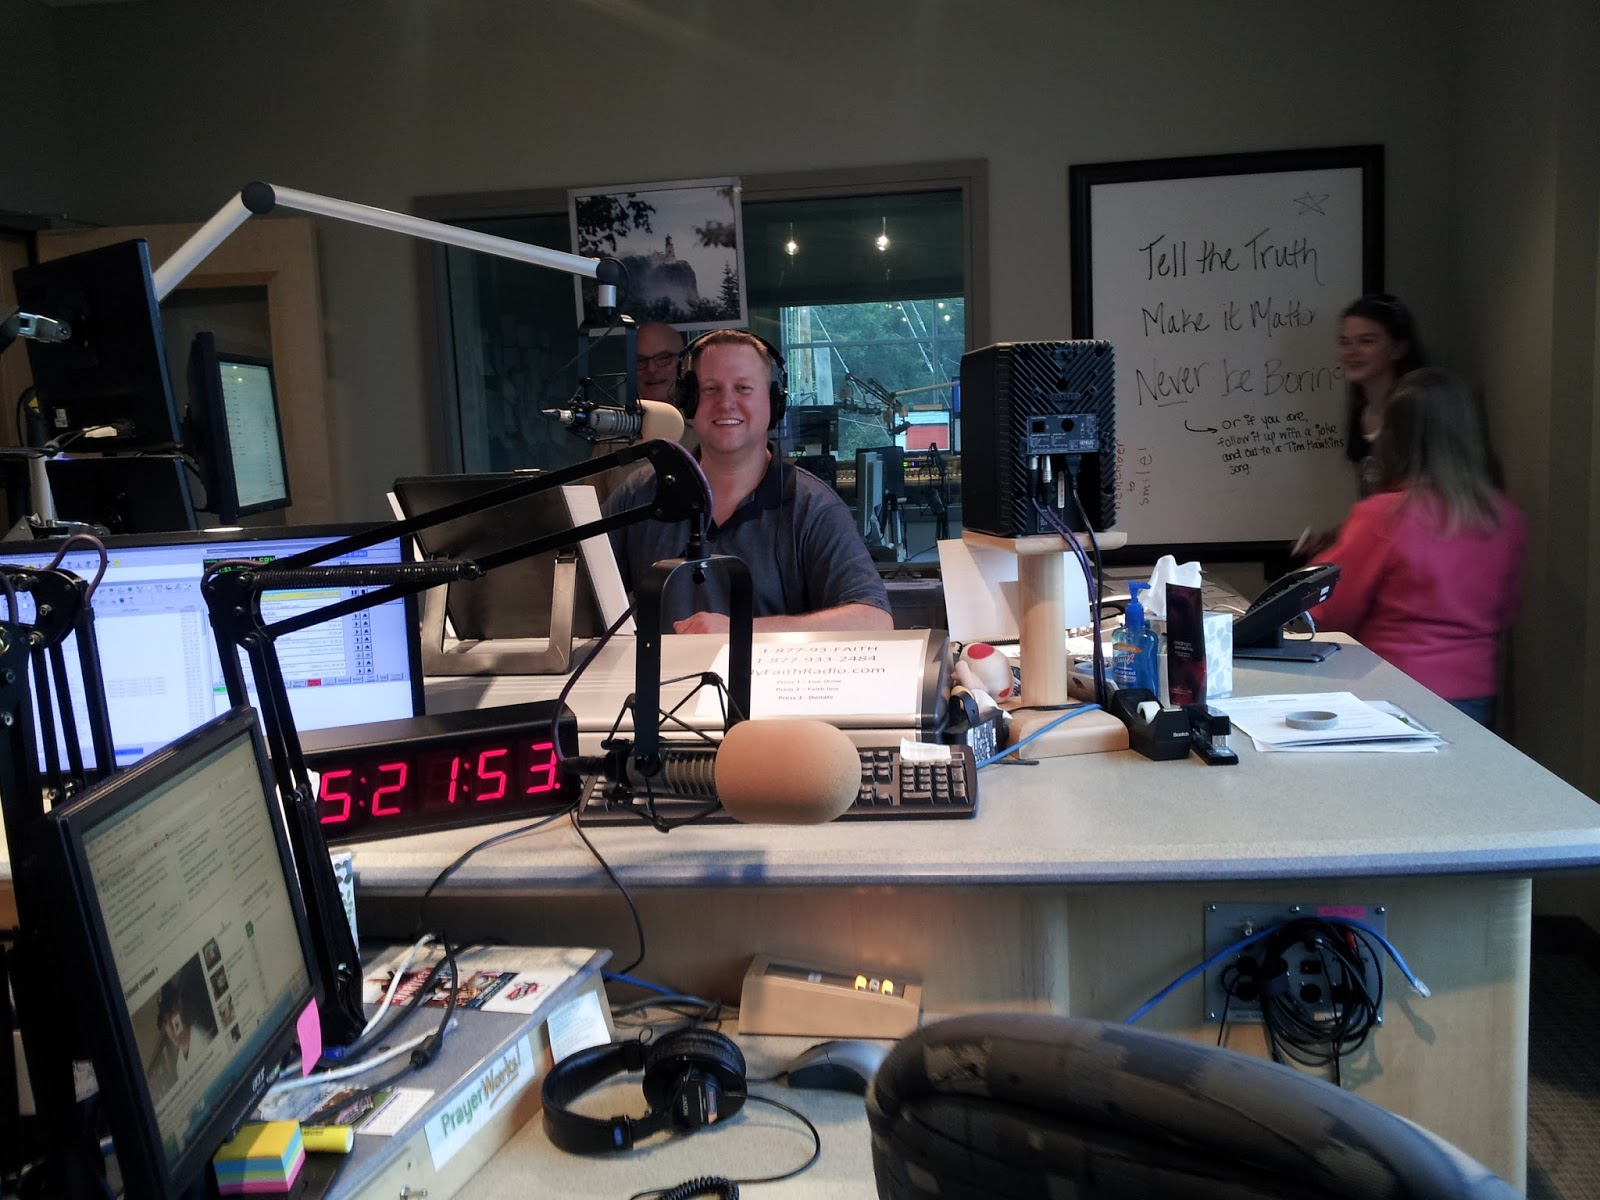 Life in a canned ham: Inside the Radio Station